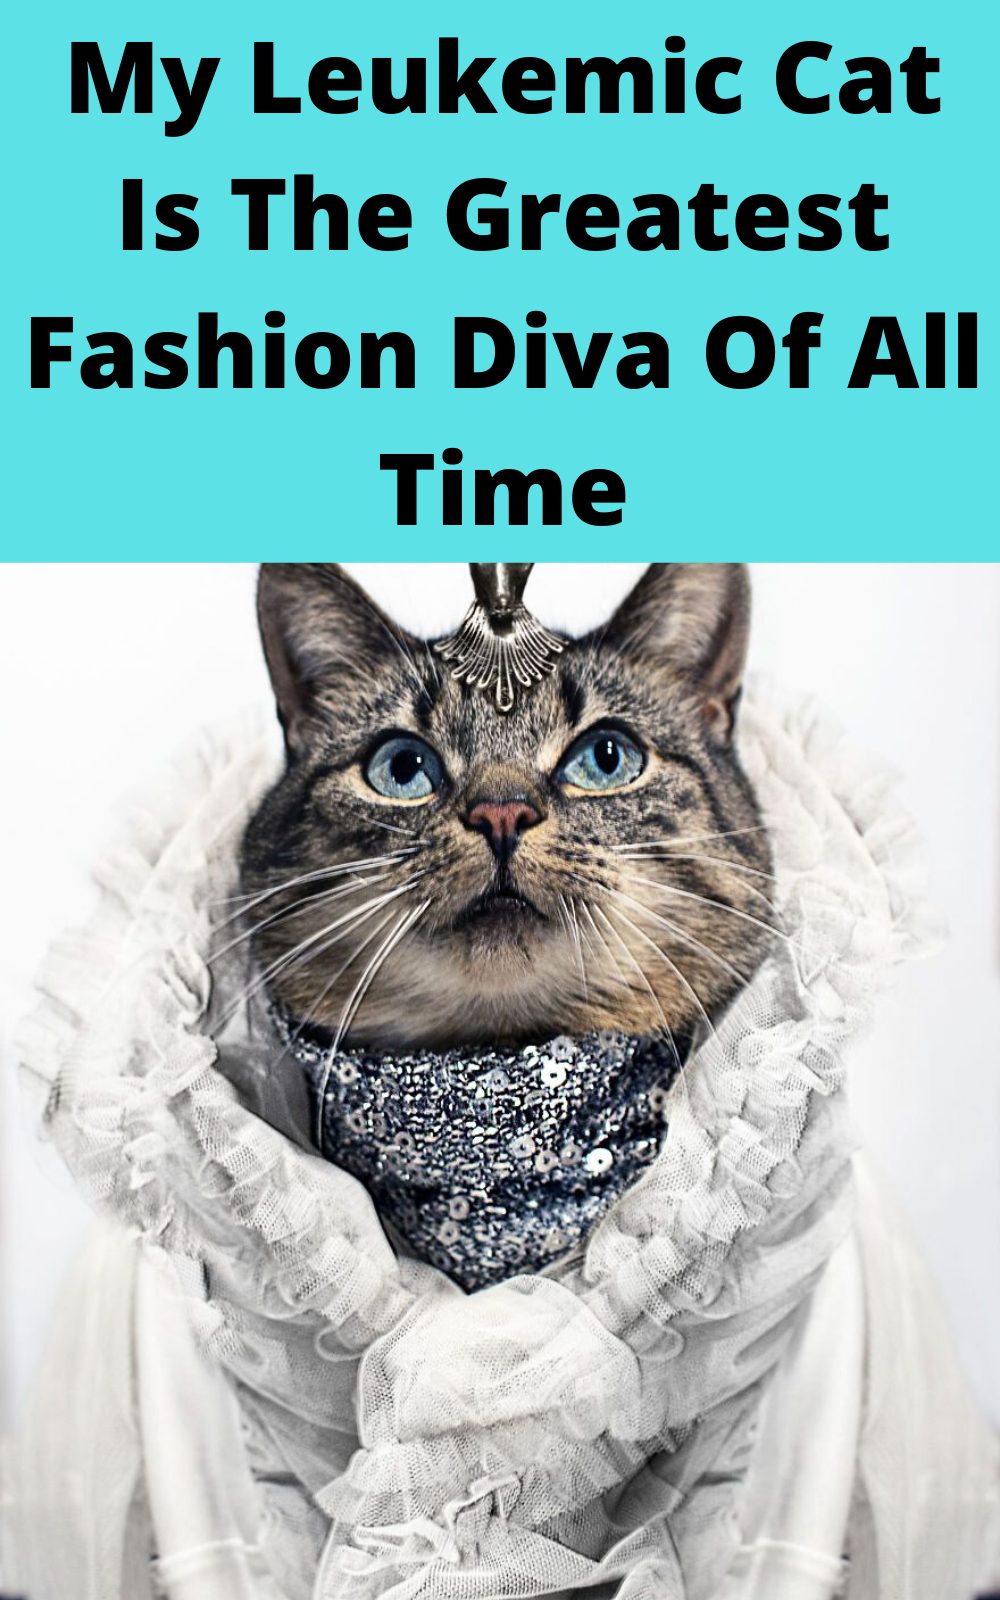 My Leukemic Cat Is The Greatest Fashion Diva Of All Time